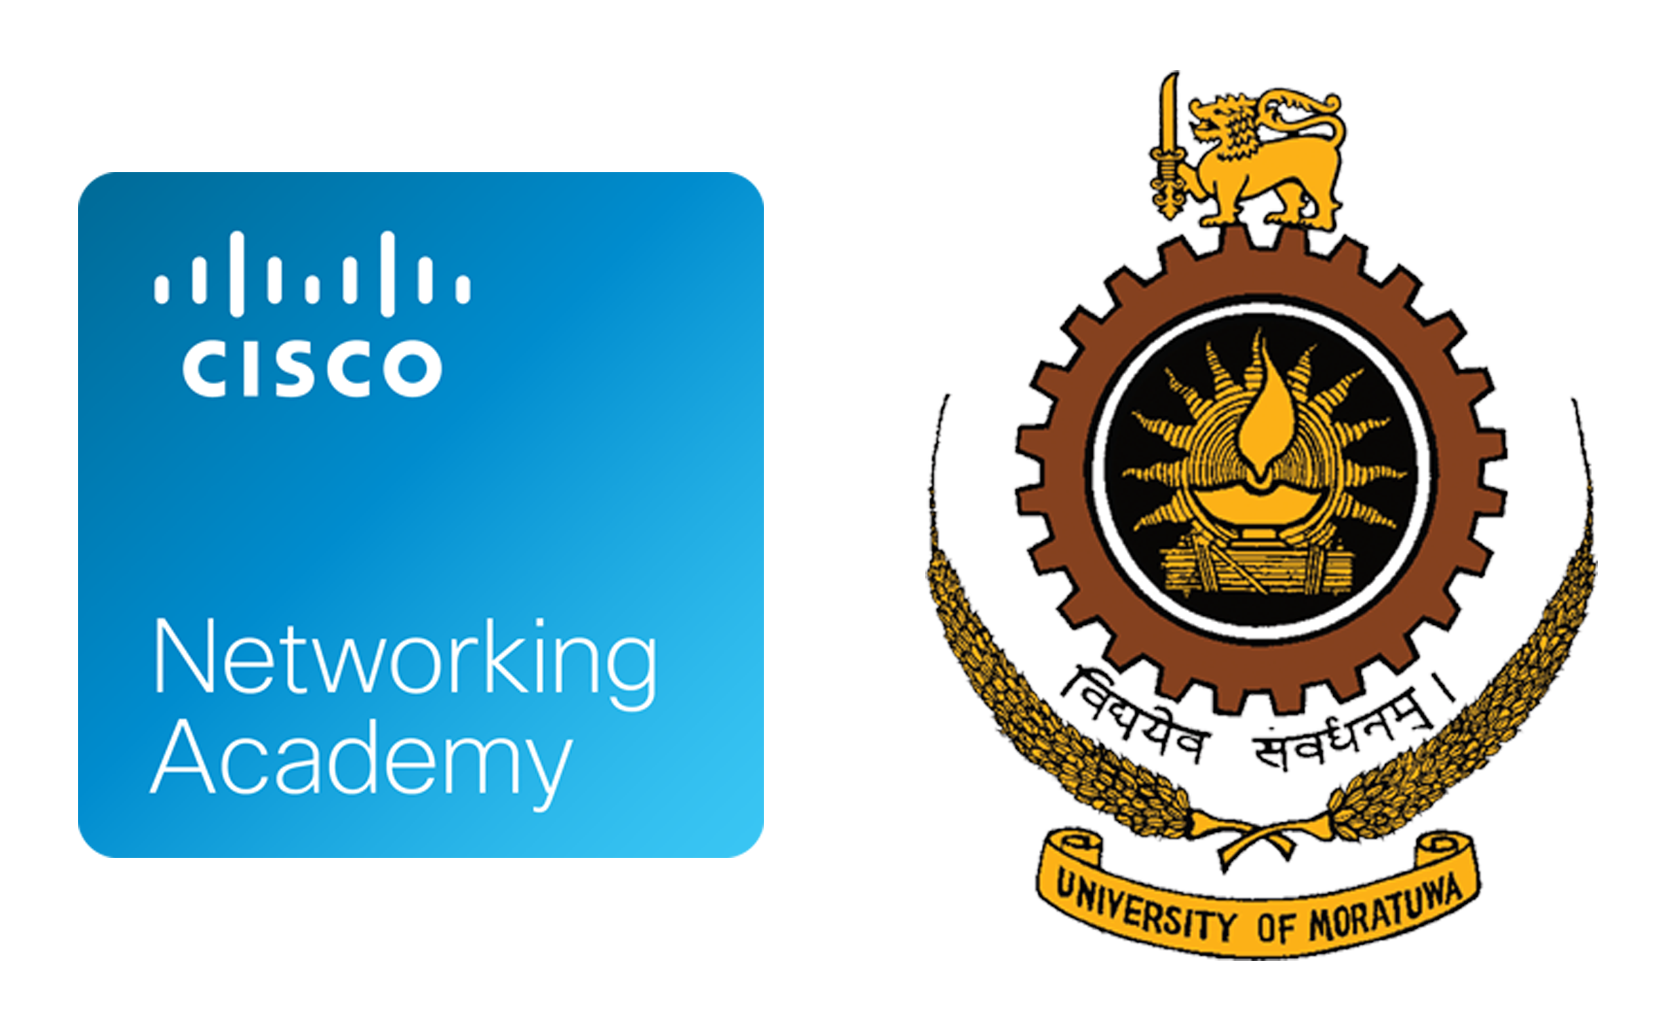 University of Moratuwa-Cisco Networking Center | University